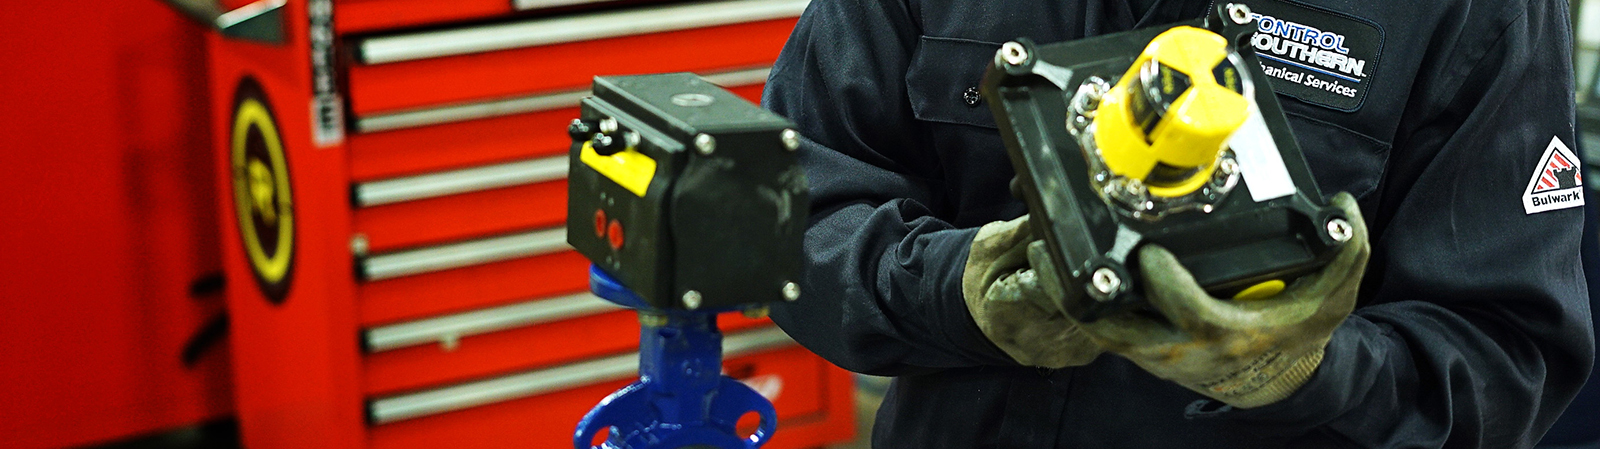 Valve and Actuator Repair Services